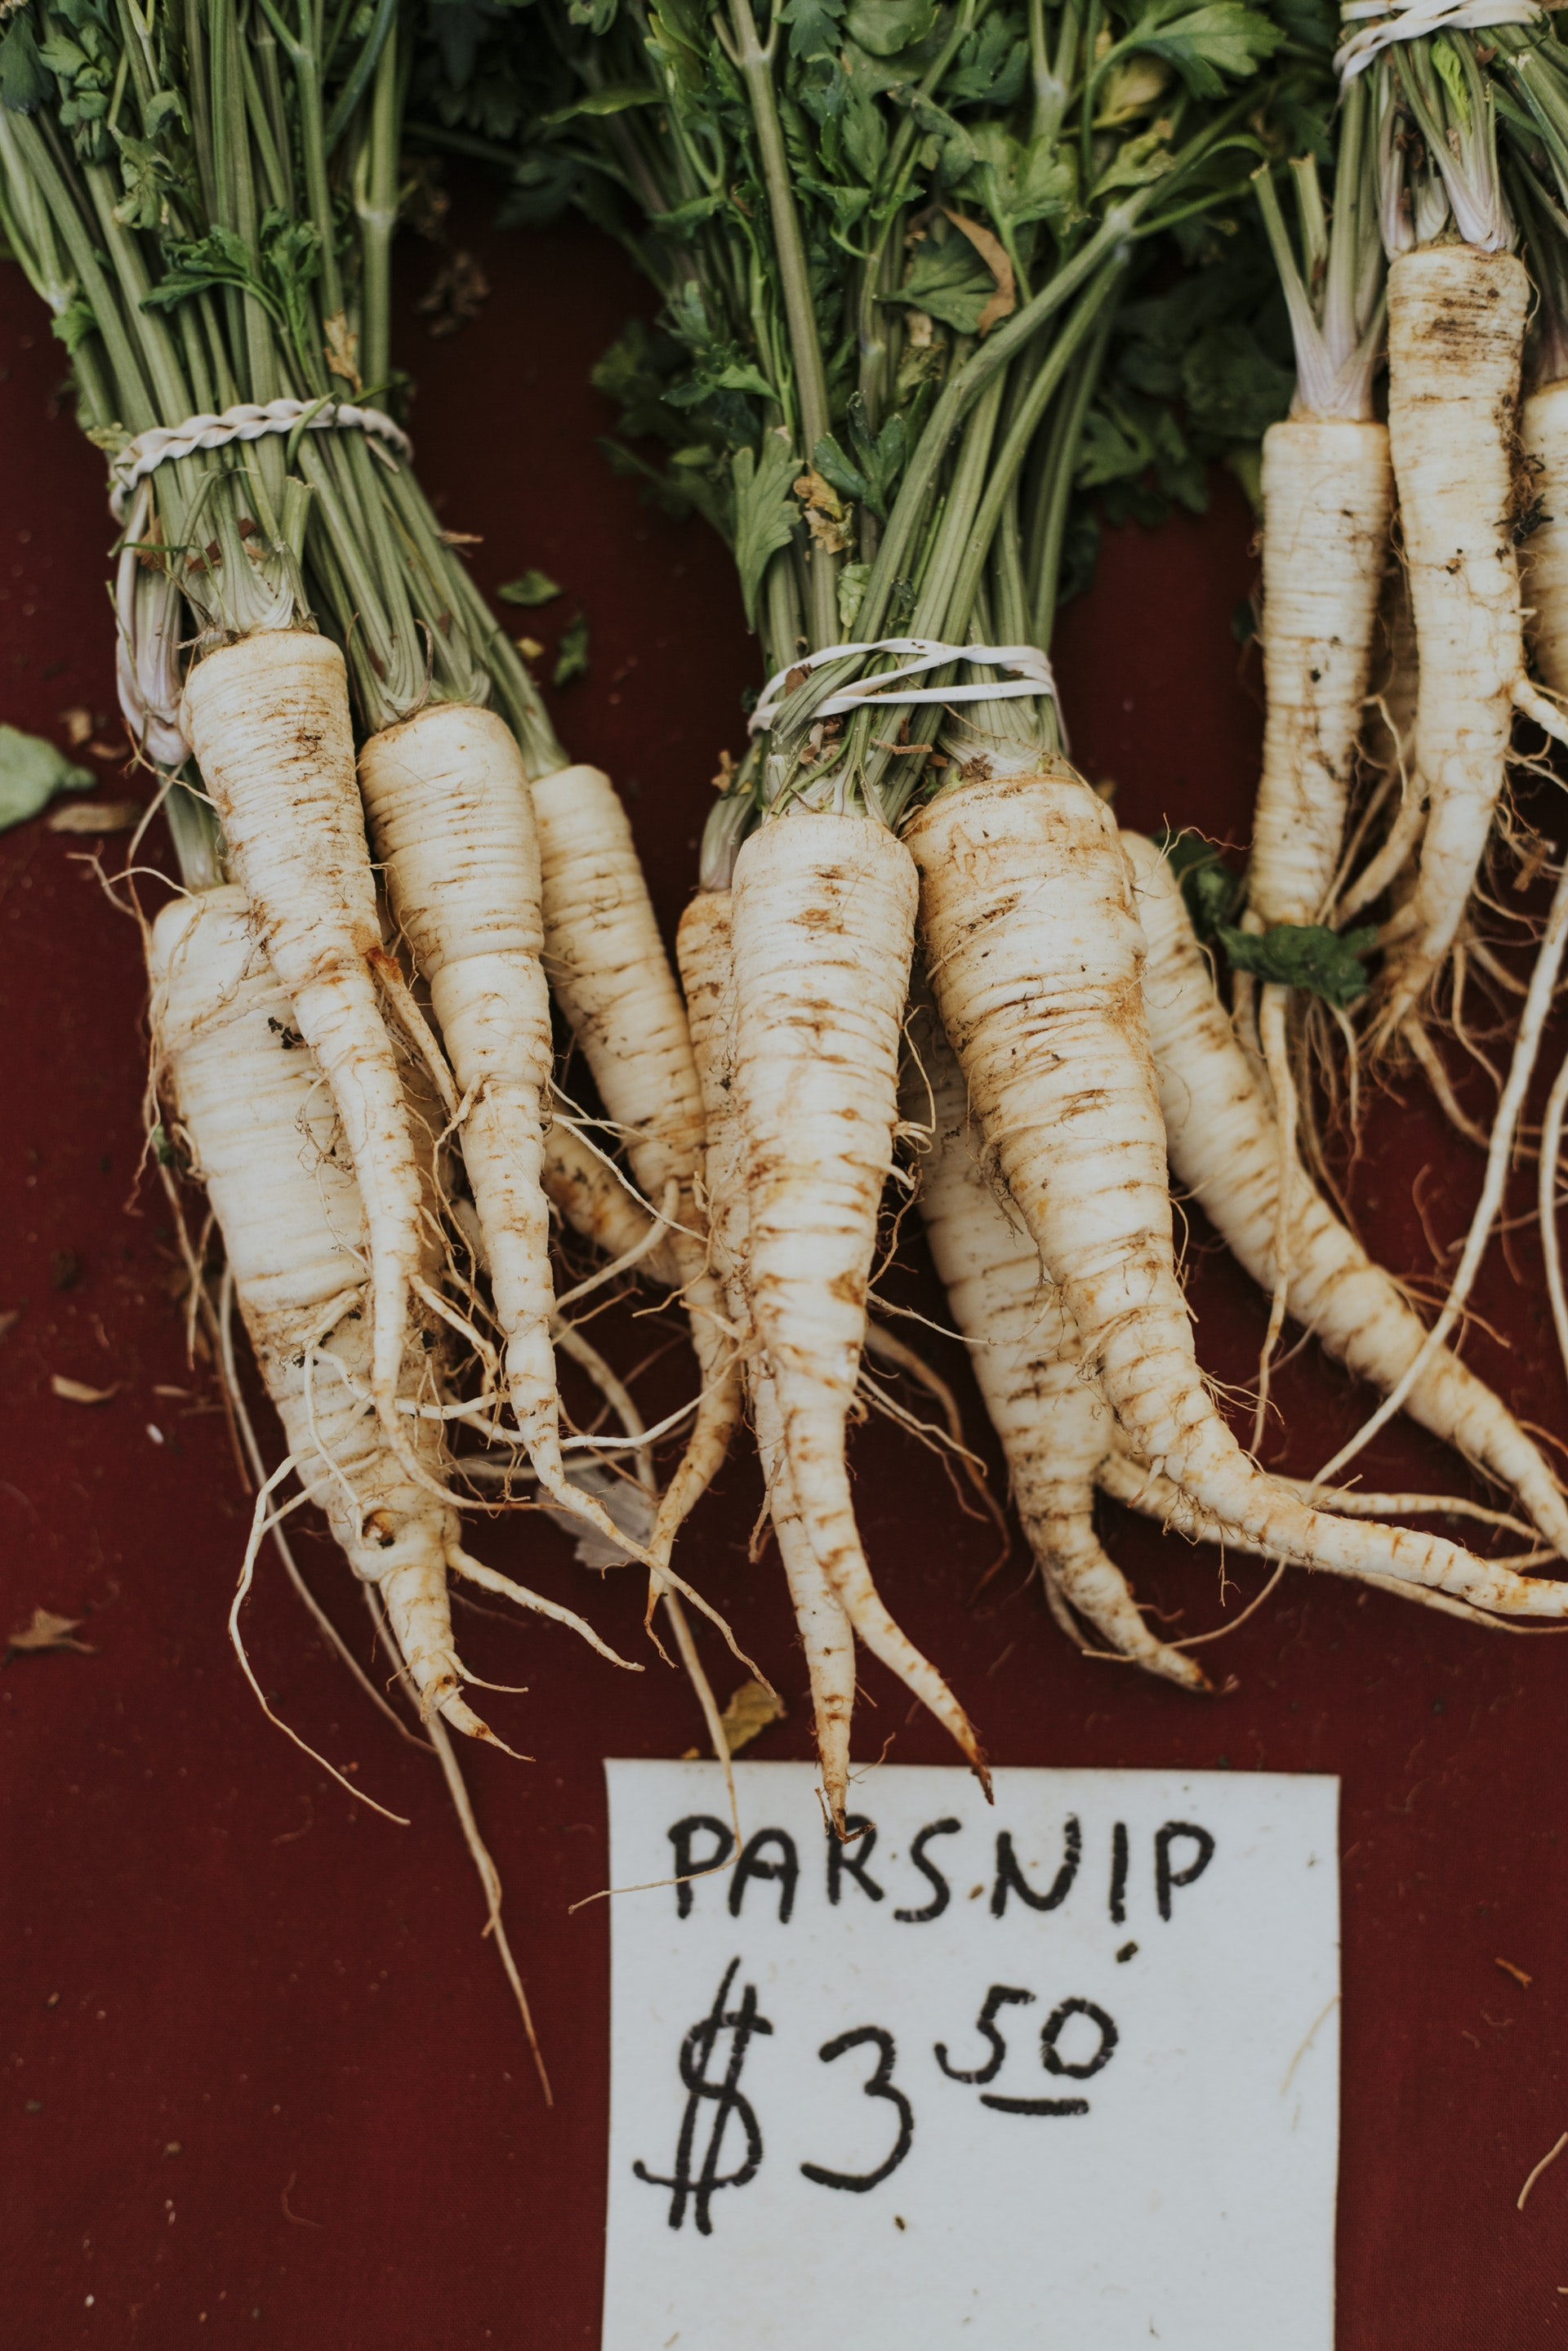 above: roasted parsnips with rosemary from martha stewart